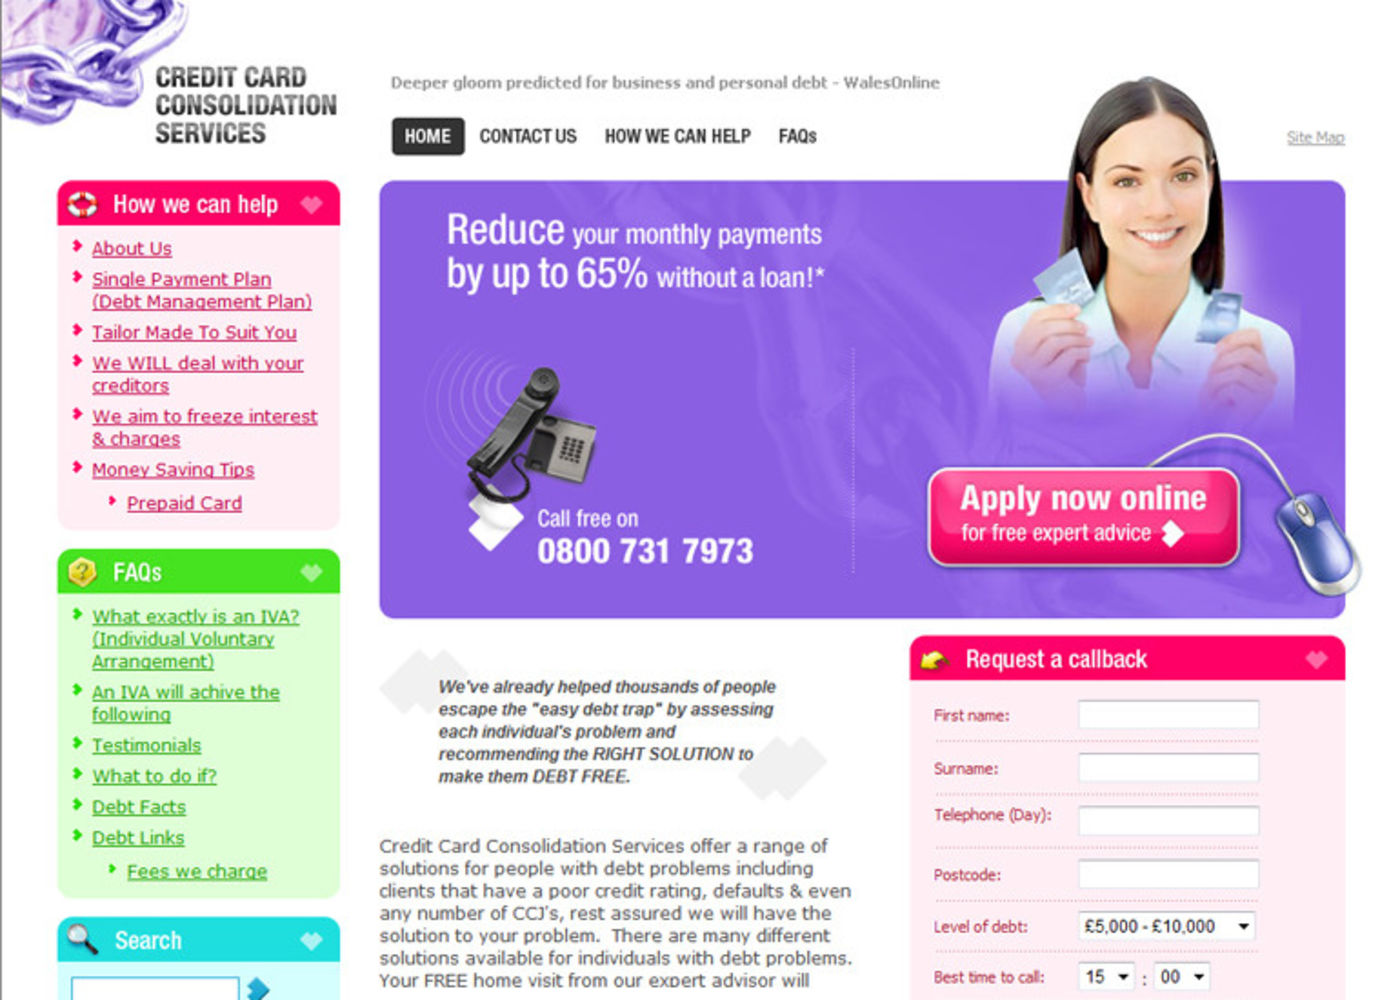 Credit Card Consolidation Services Homepage header